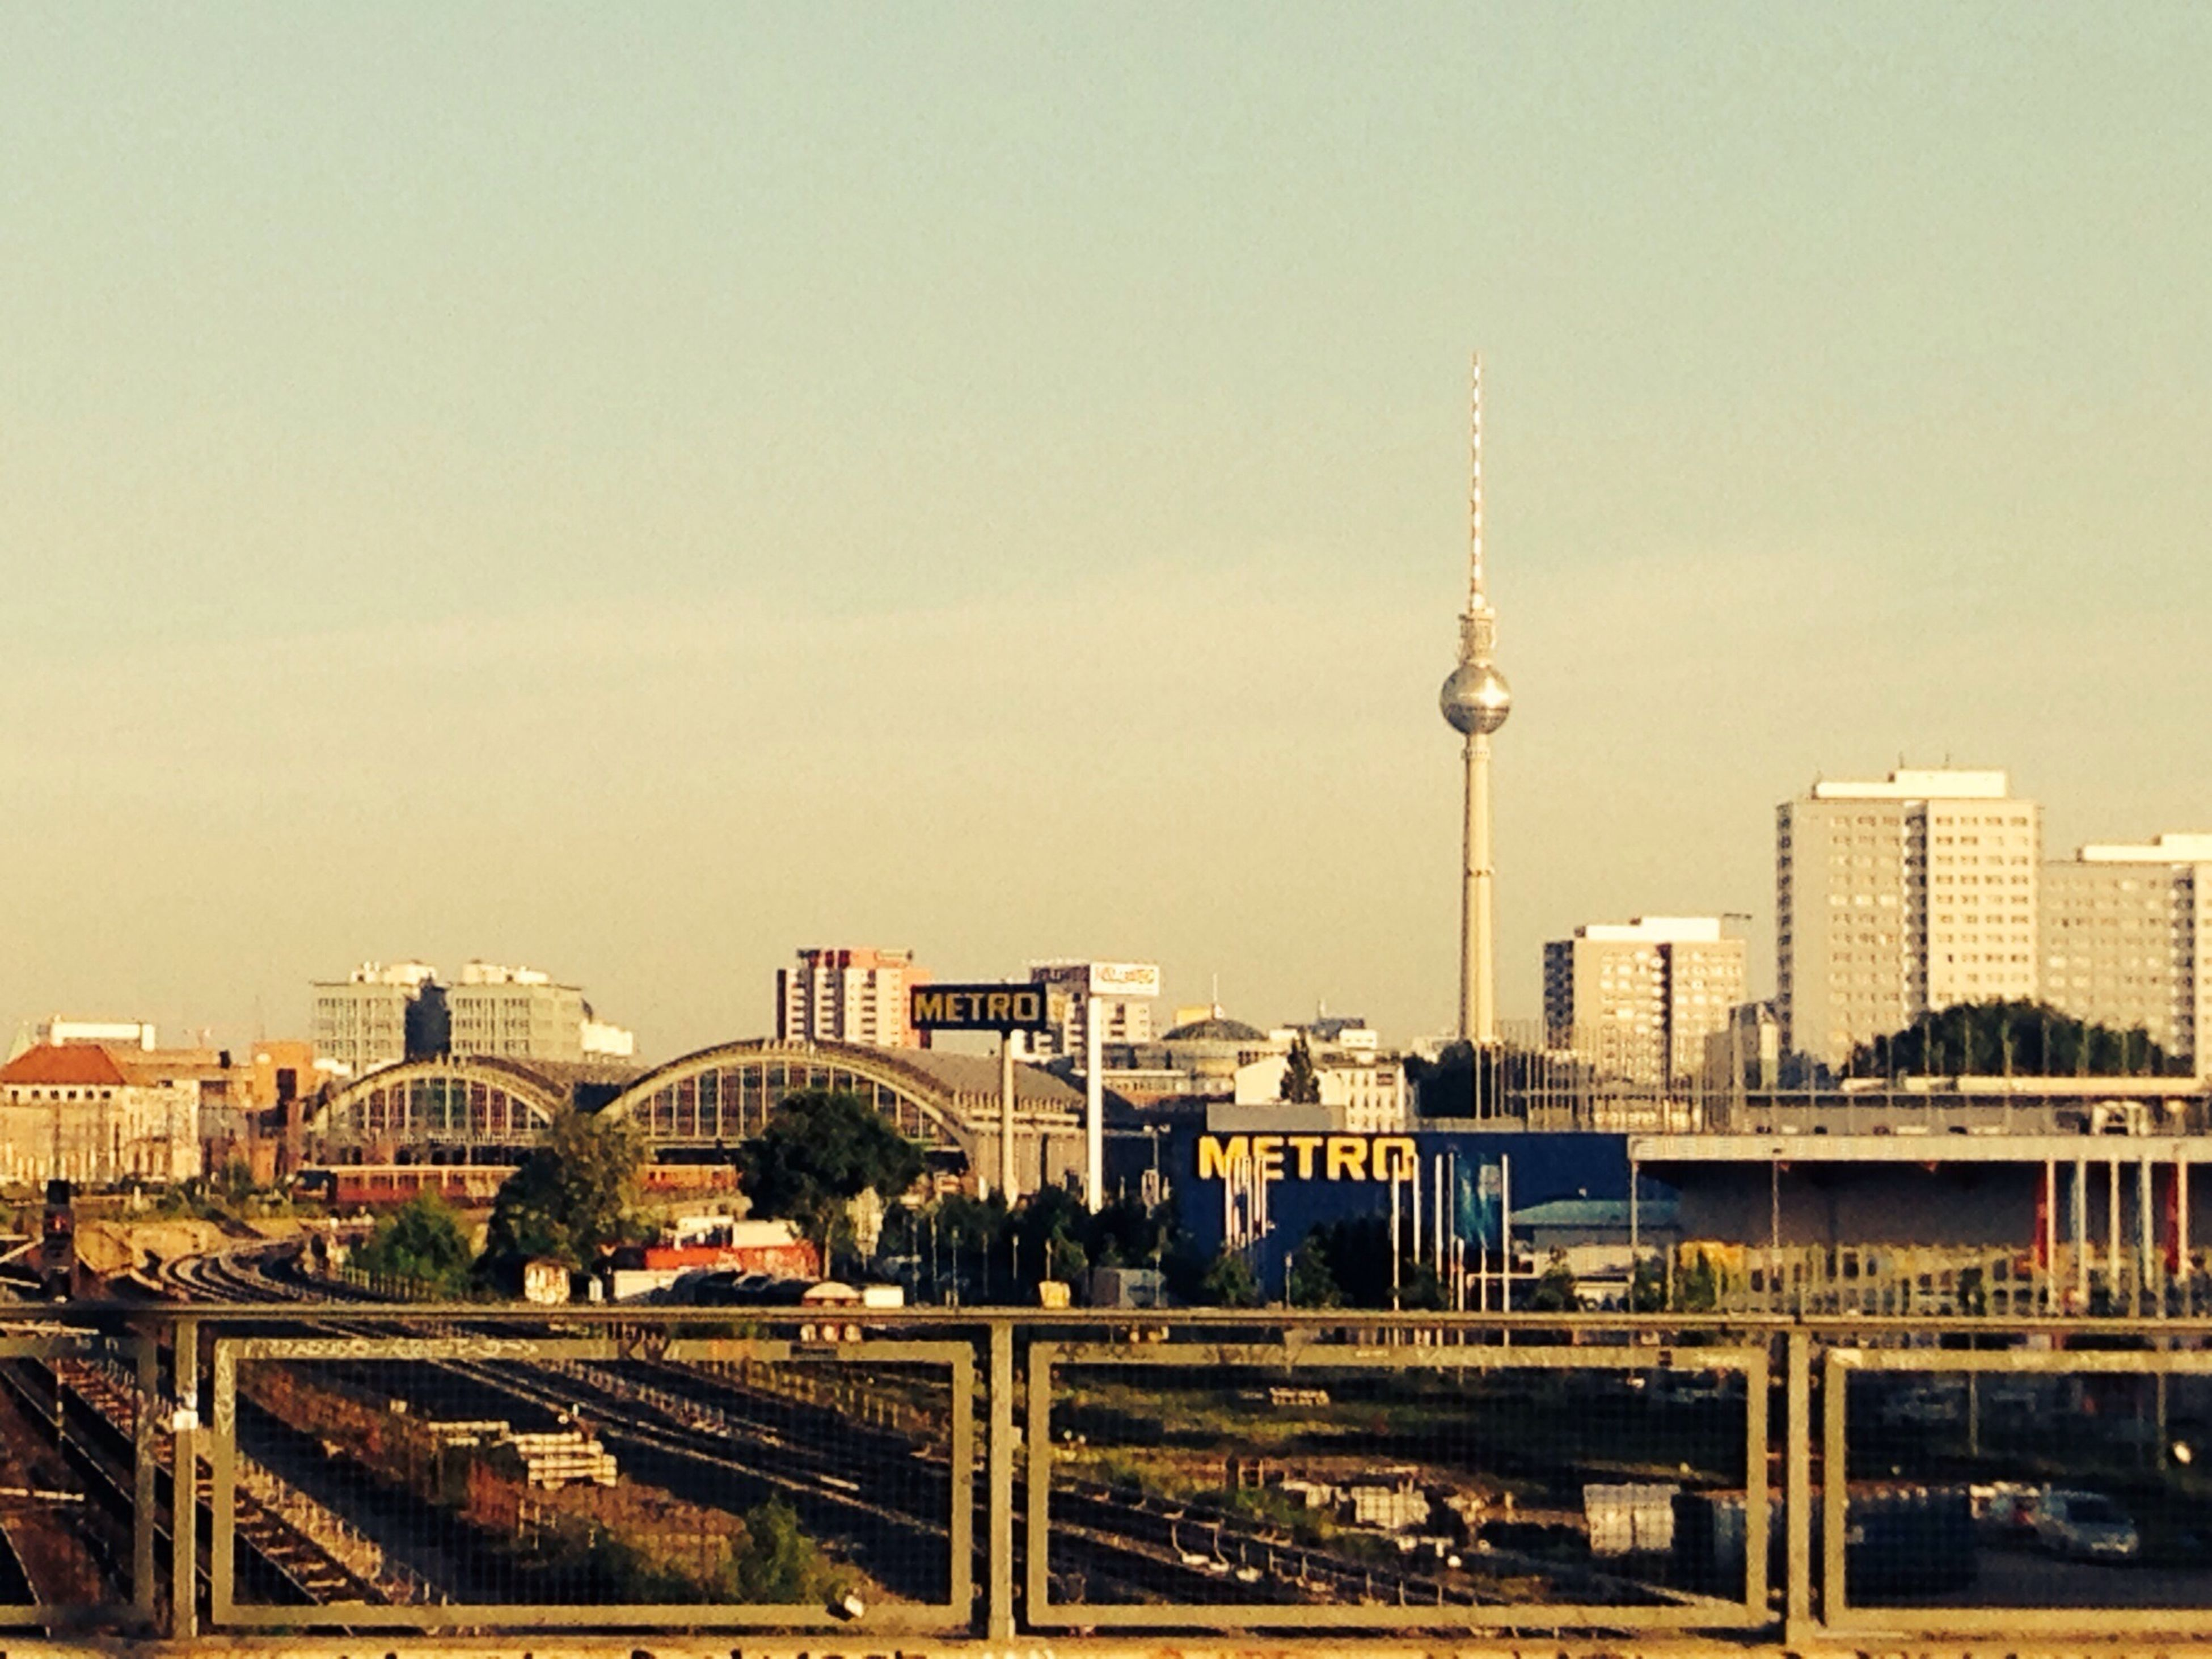 architecture, built structure, communications tower, tower, building exterior, tall - high, city, international landmark, travel destinations, capital cities, famous place, communication, spire, tourism, fernsehturm, television tower, travel, skyscraper, cityscape, culture